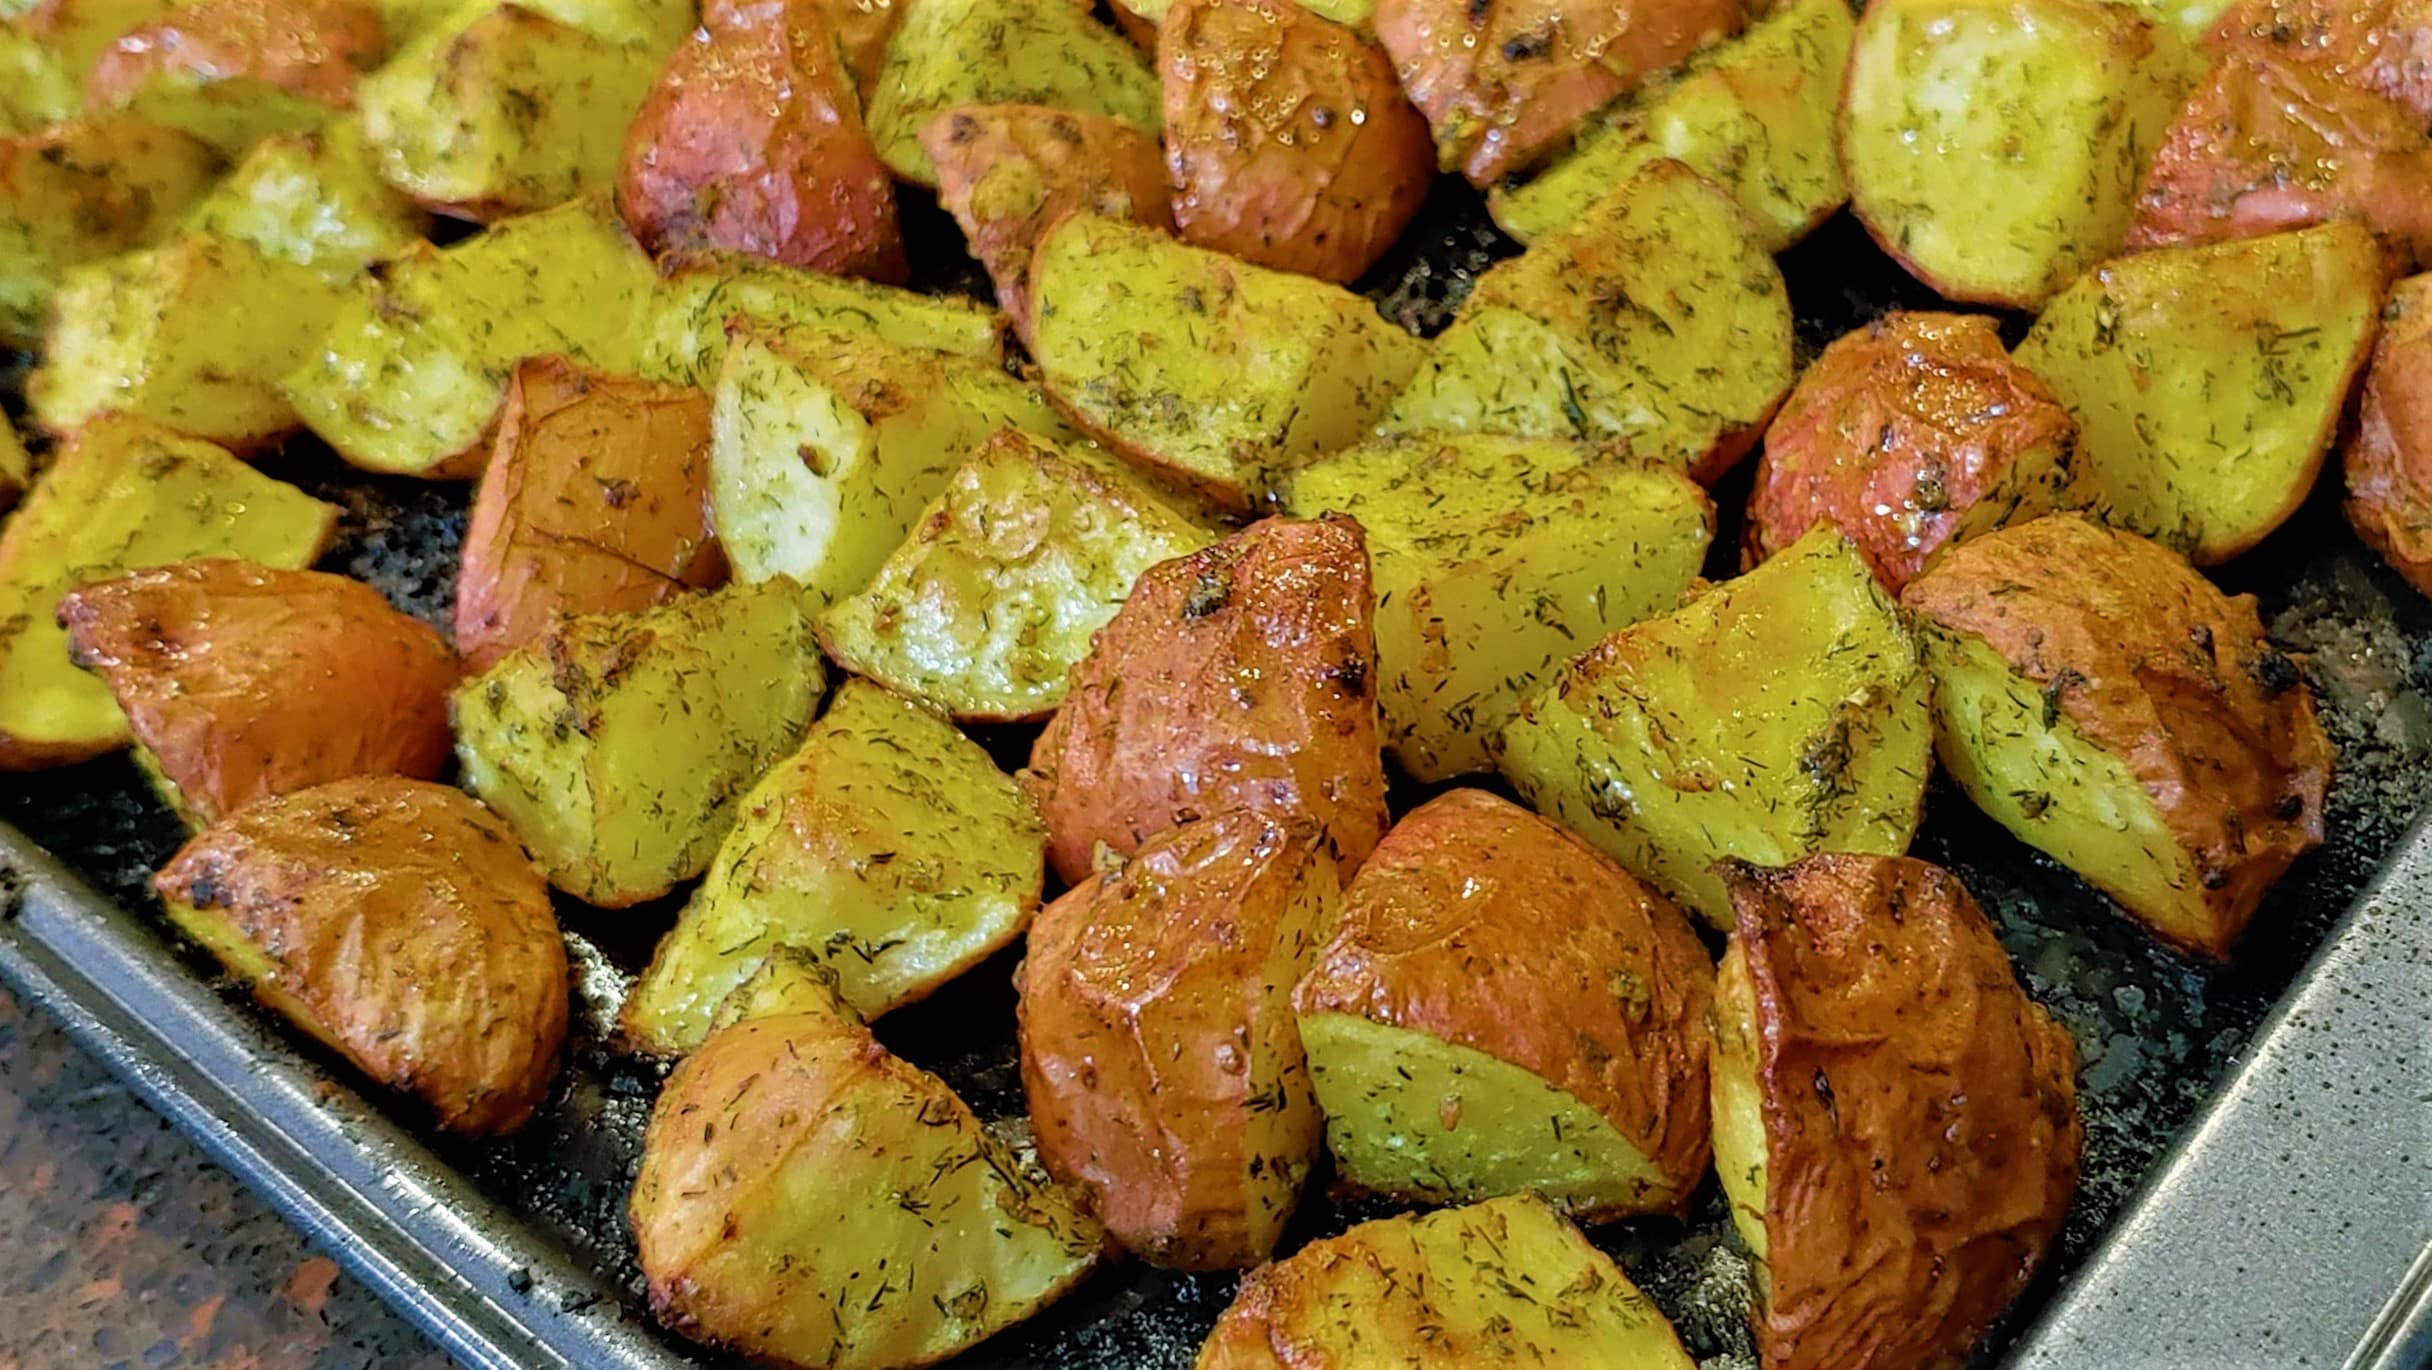 Roasted Potatoes - Dining in with Danielle